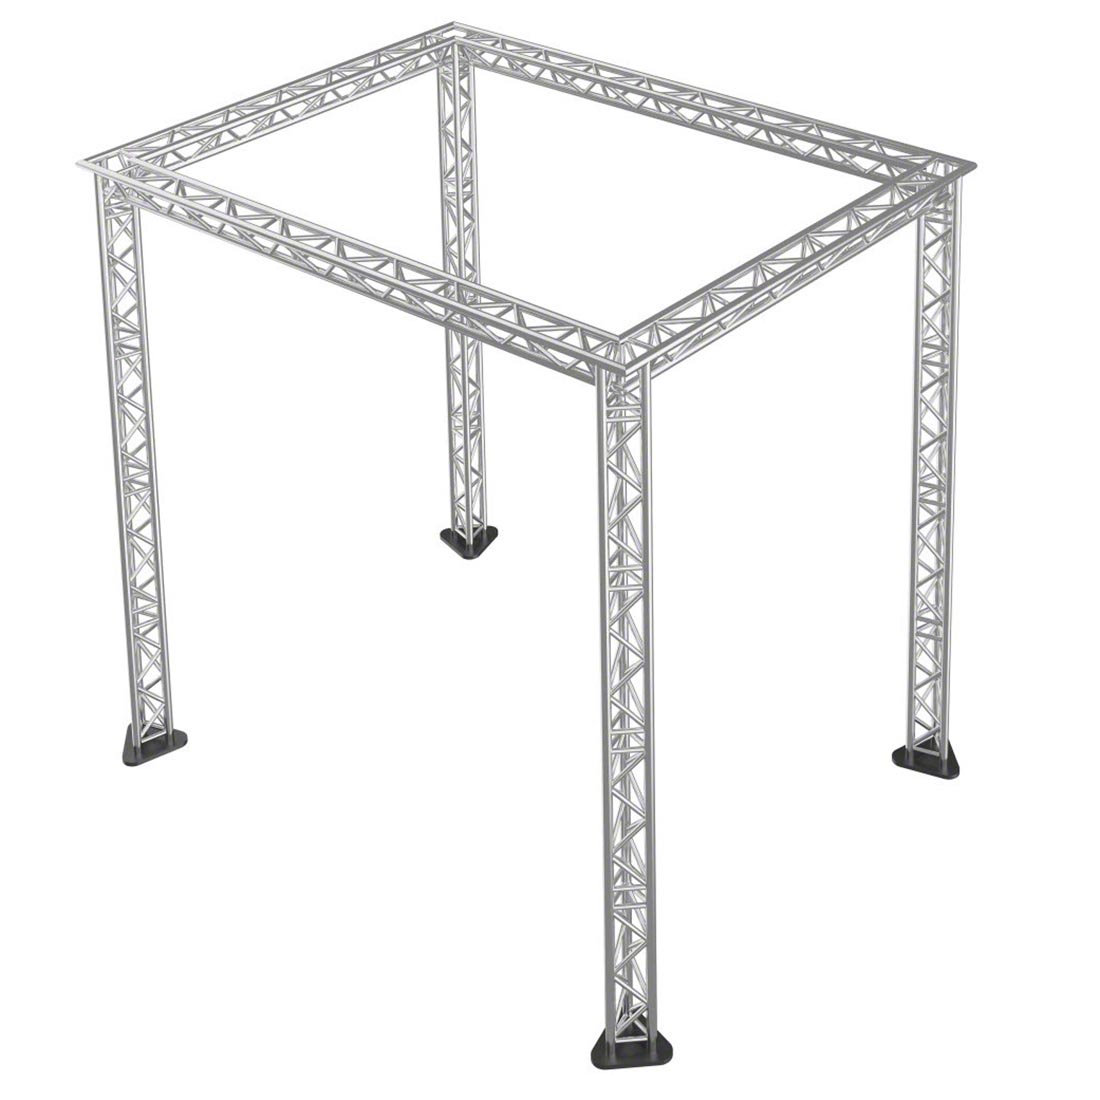 F33 Triangle Truss Kits for Stages